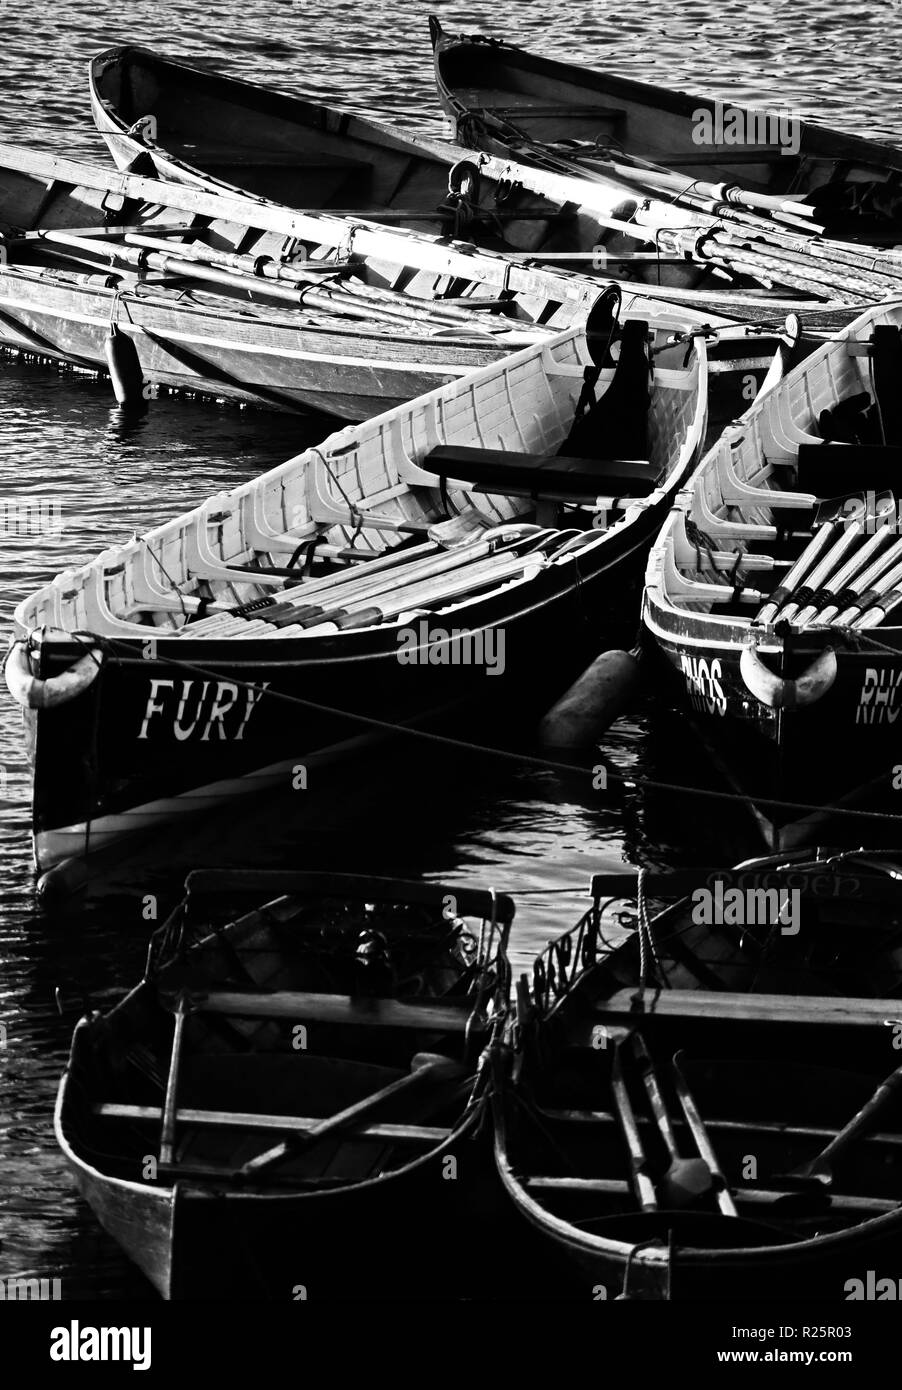 An abstract image depicting a selection of Cornish Gigs and other rowing boats moored on the River Thames at Richmond Upon Thames, England - Stock Image